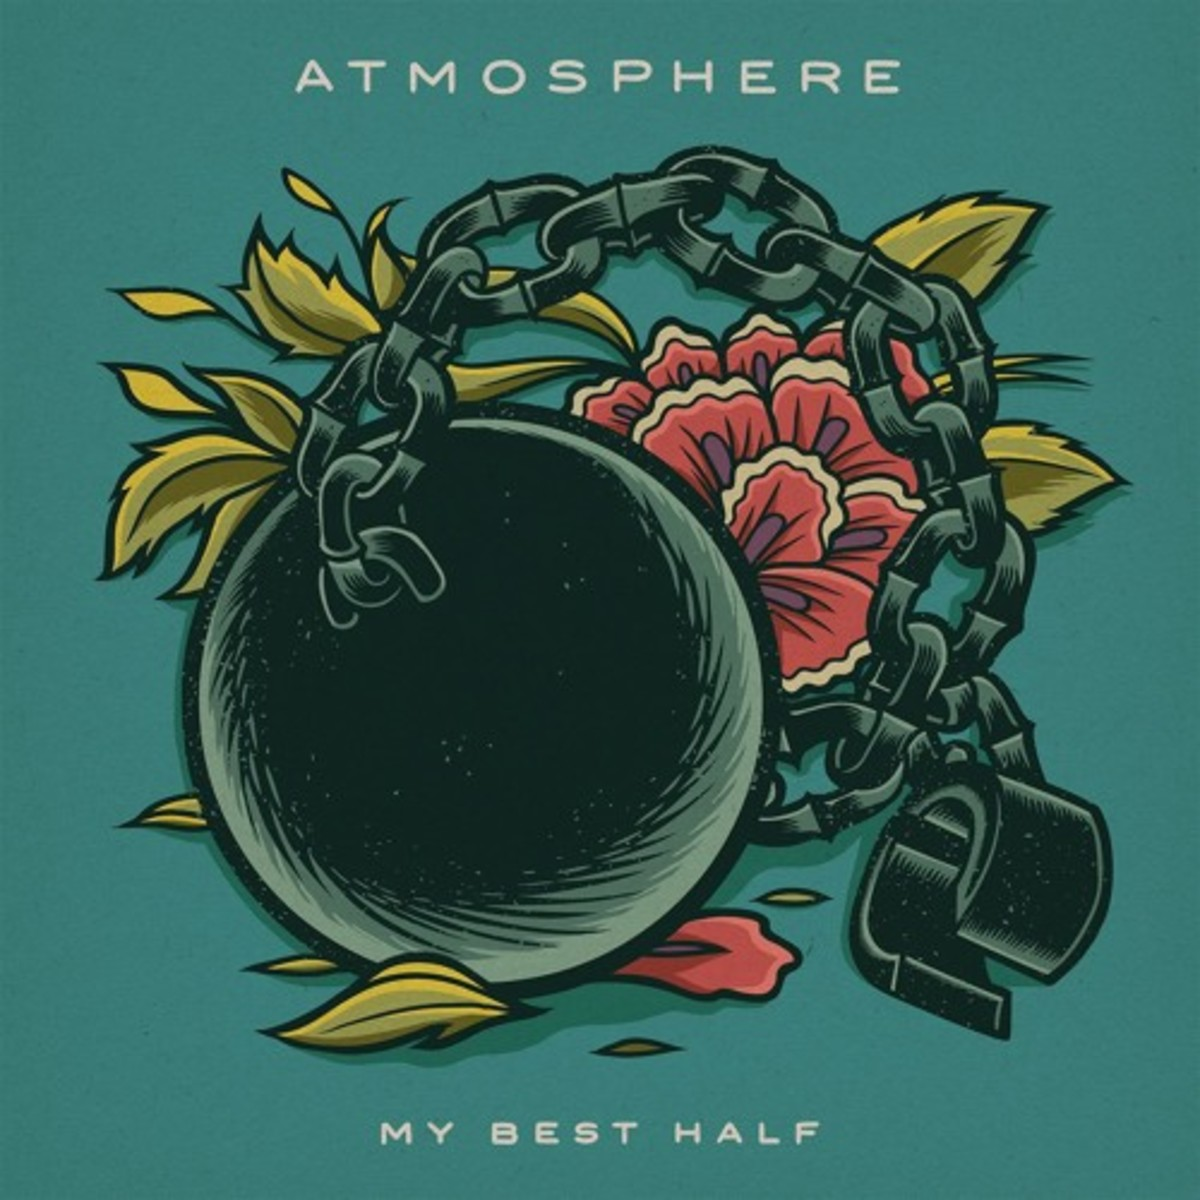 atmosphere-my-best-half.jpg